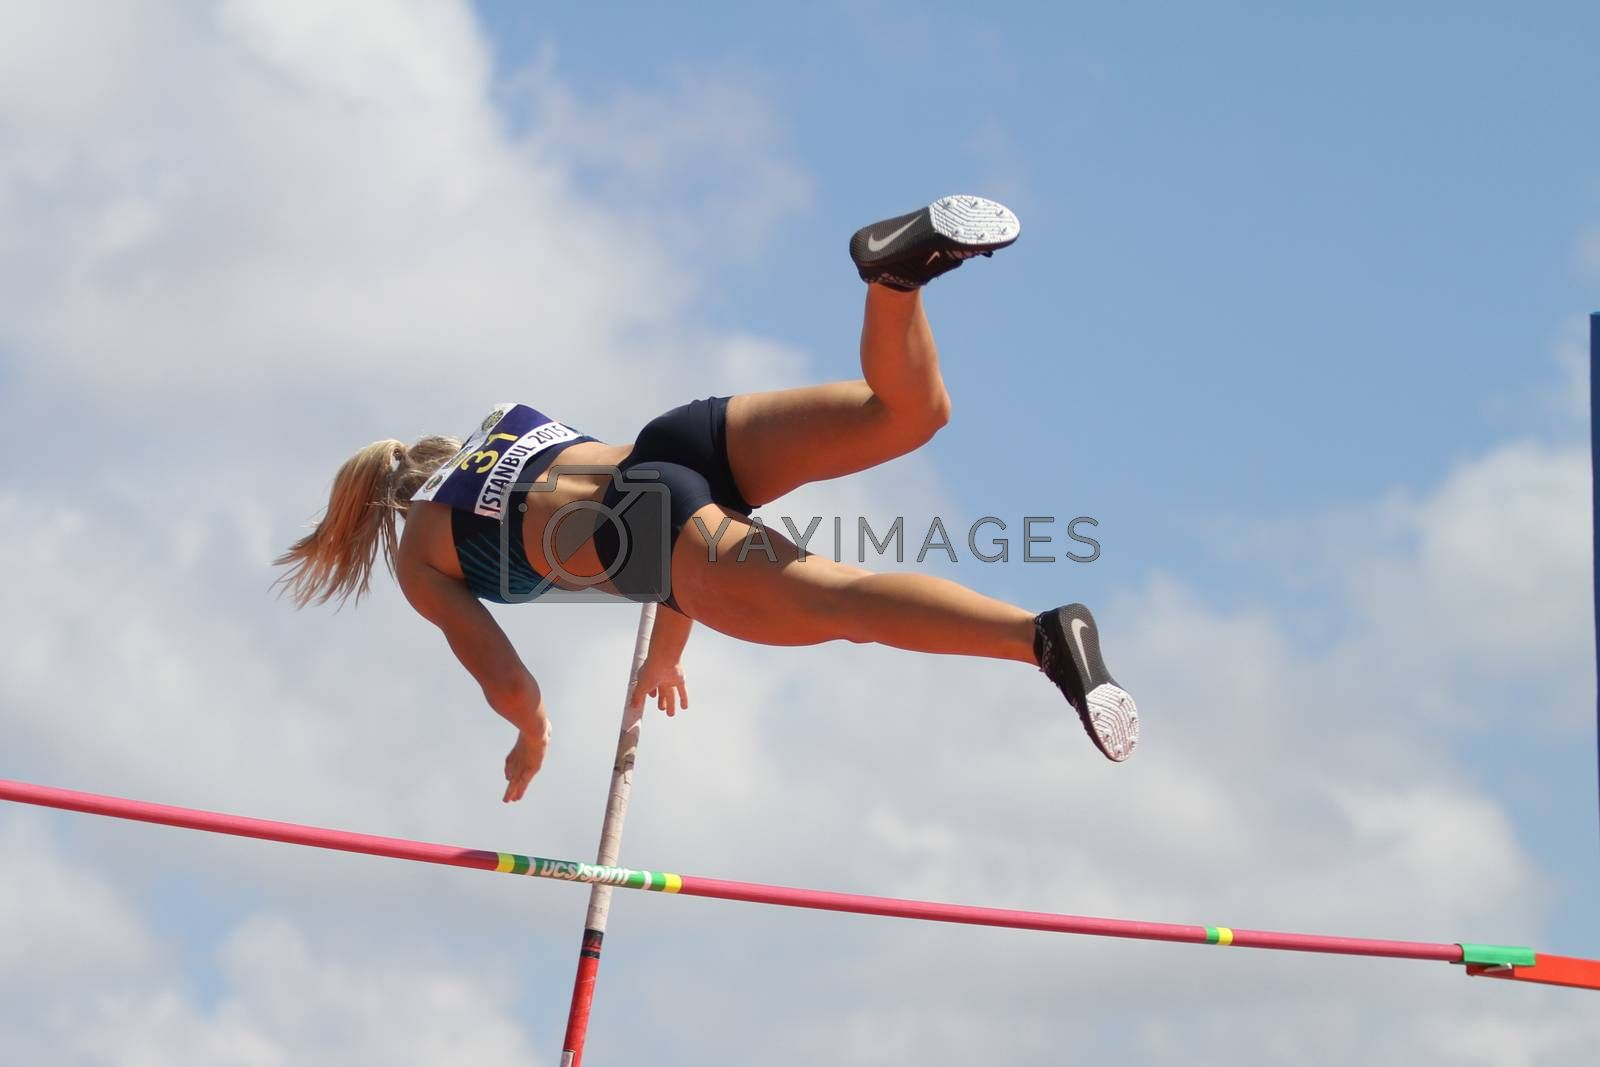 ISTANBUL, TURKEY - SEPTEMBER 19, 2015: Athlete Mira Guldbrandsen pole vaulting during European Champion Clubs Cup Track and Field Juniors Group A